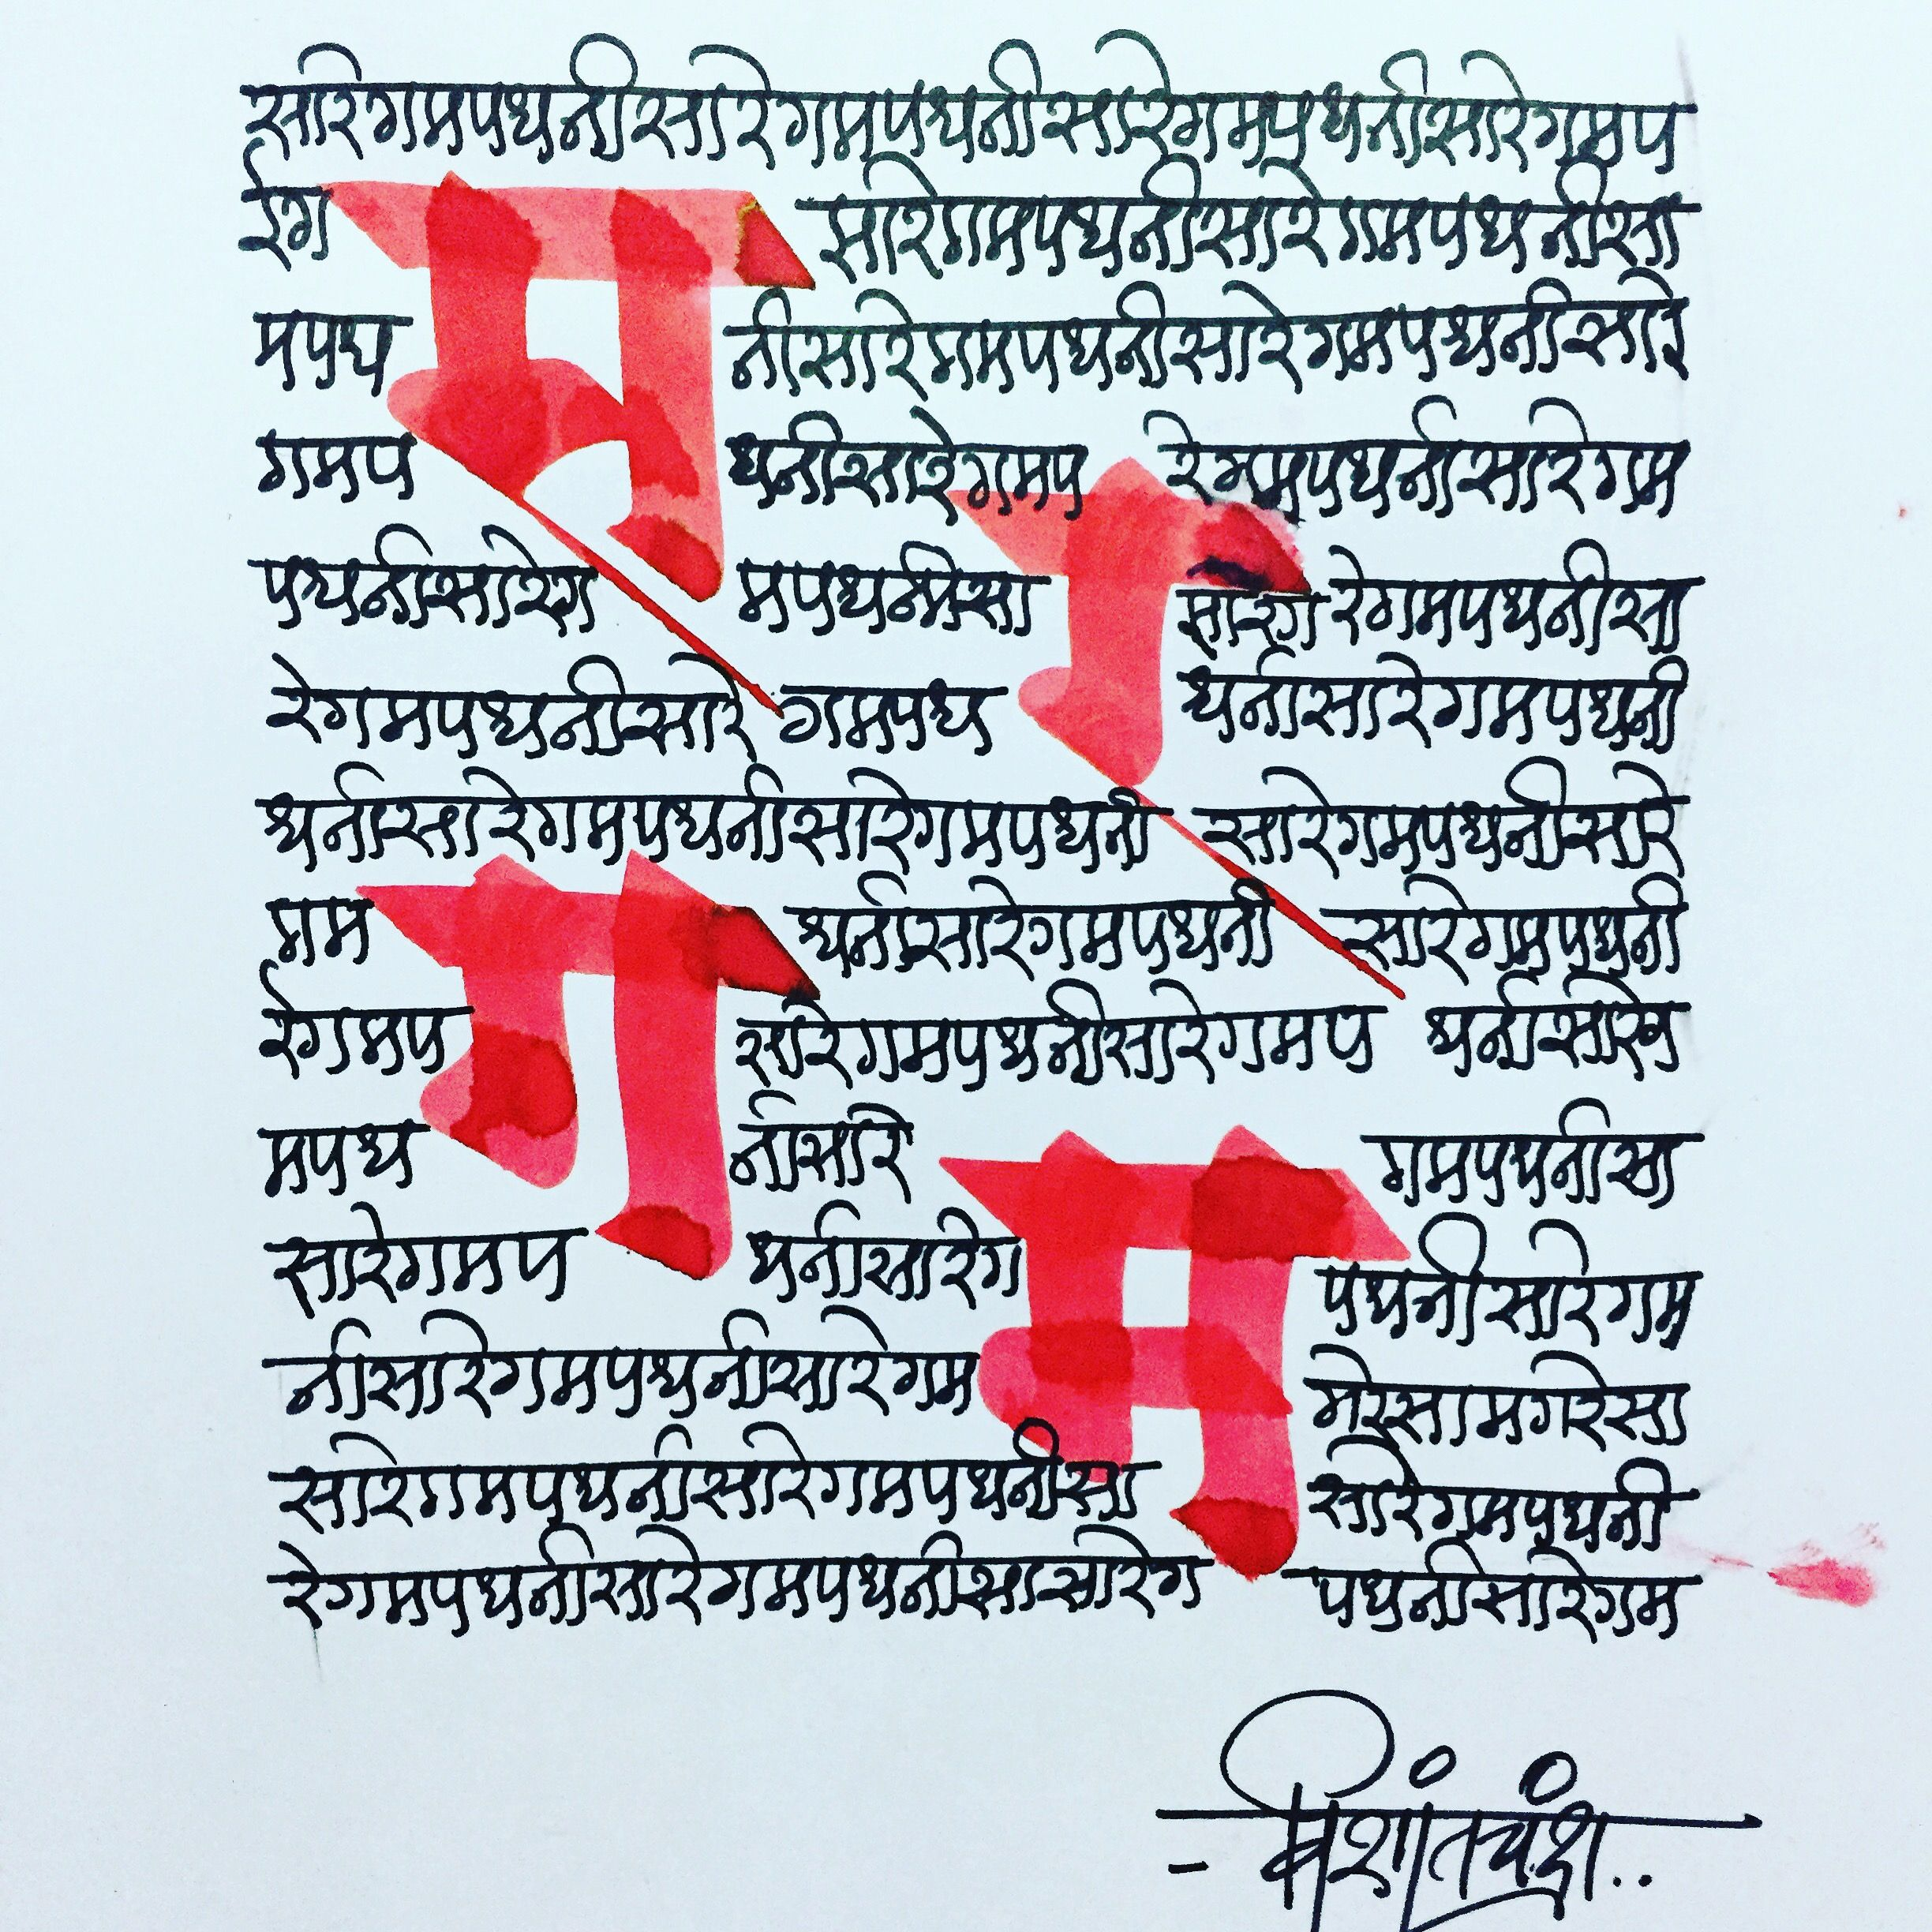 Marathi Calligraphy By Vishant Chandra